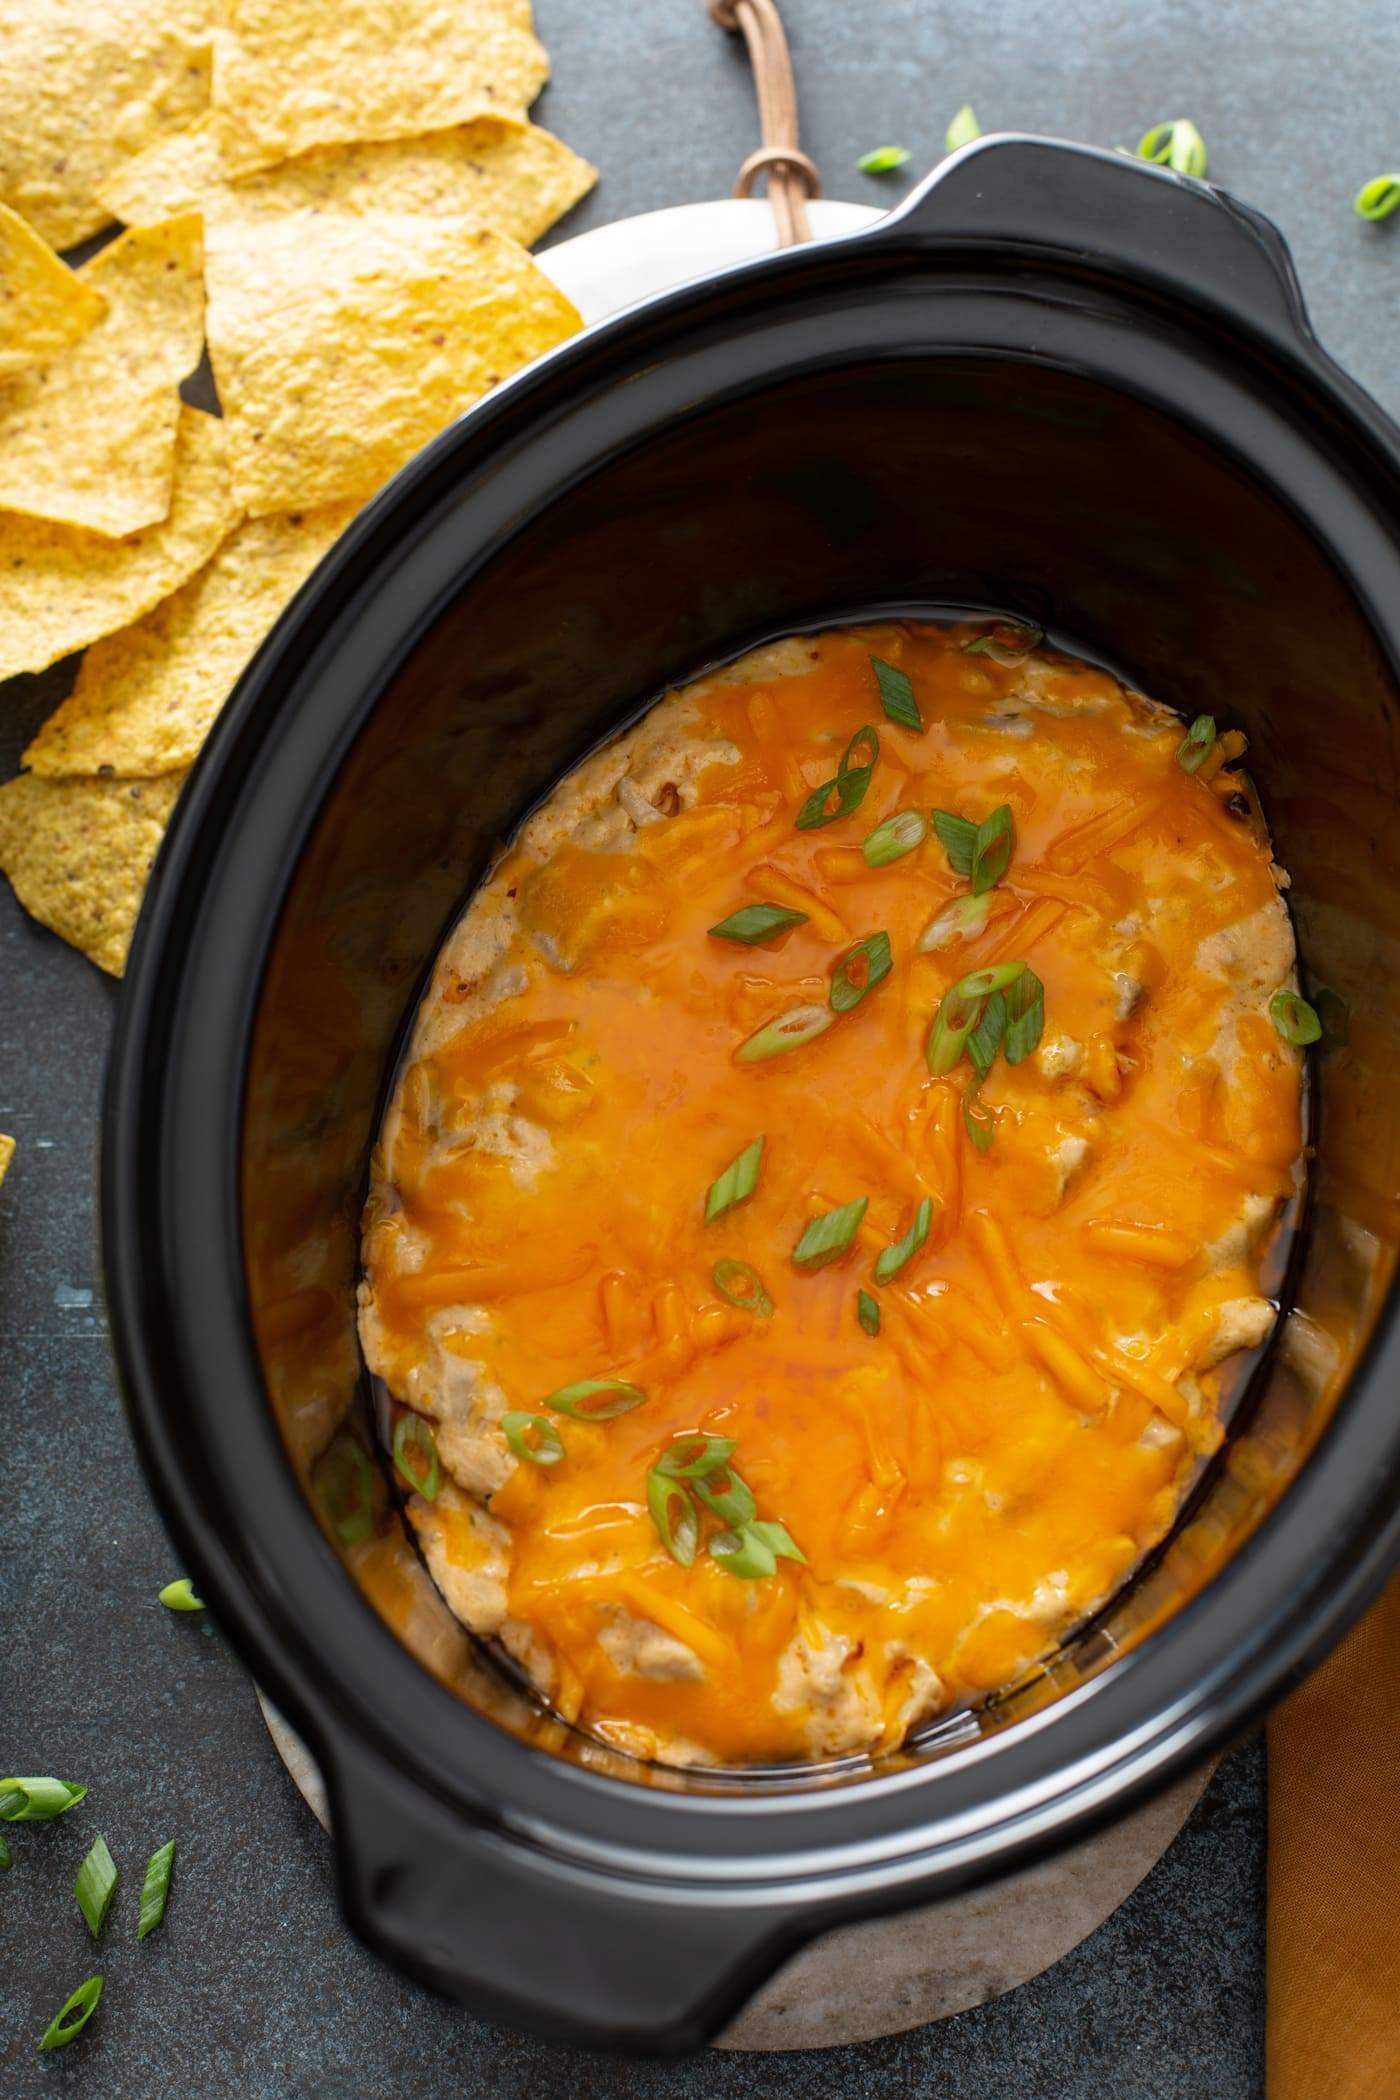 A slow cooker filled with buffalo chicken dip. The dip is cooked to a smooth, creamy perfection with melted cheese on top. Tortilla chips are in the background.